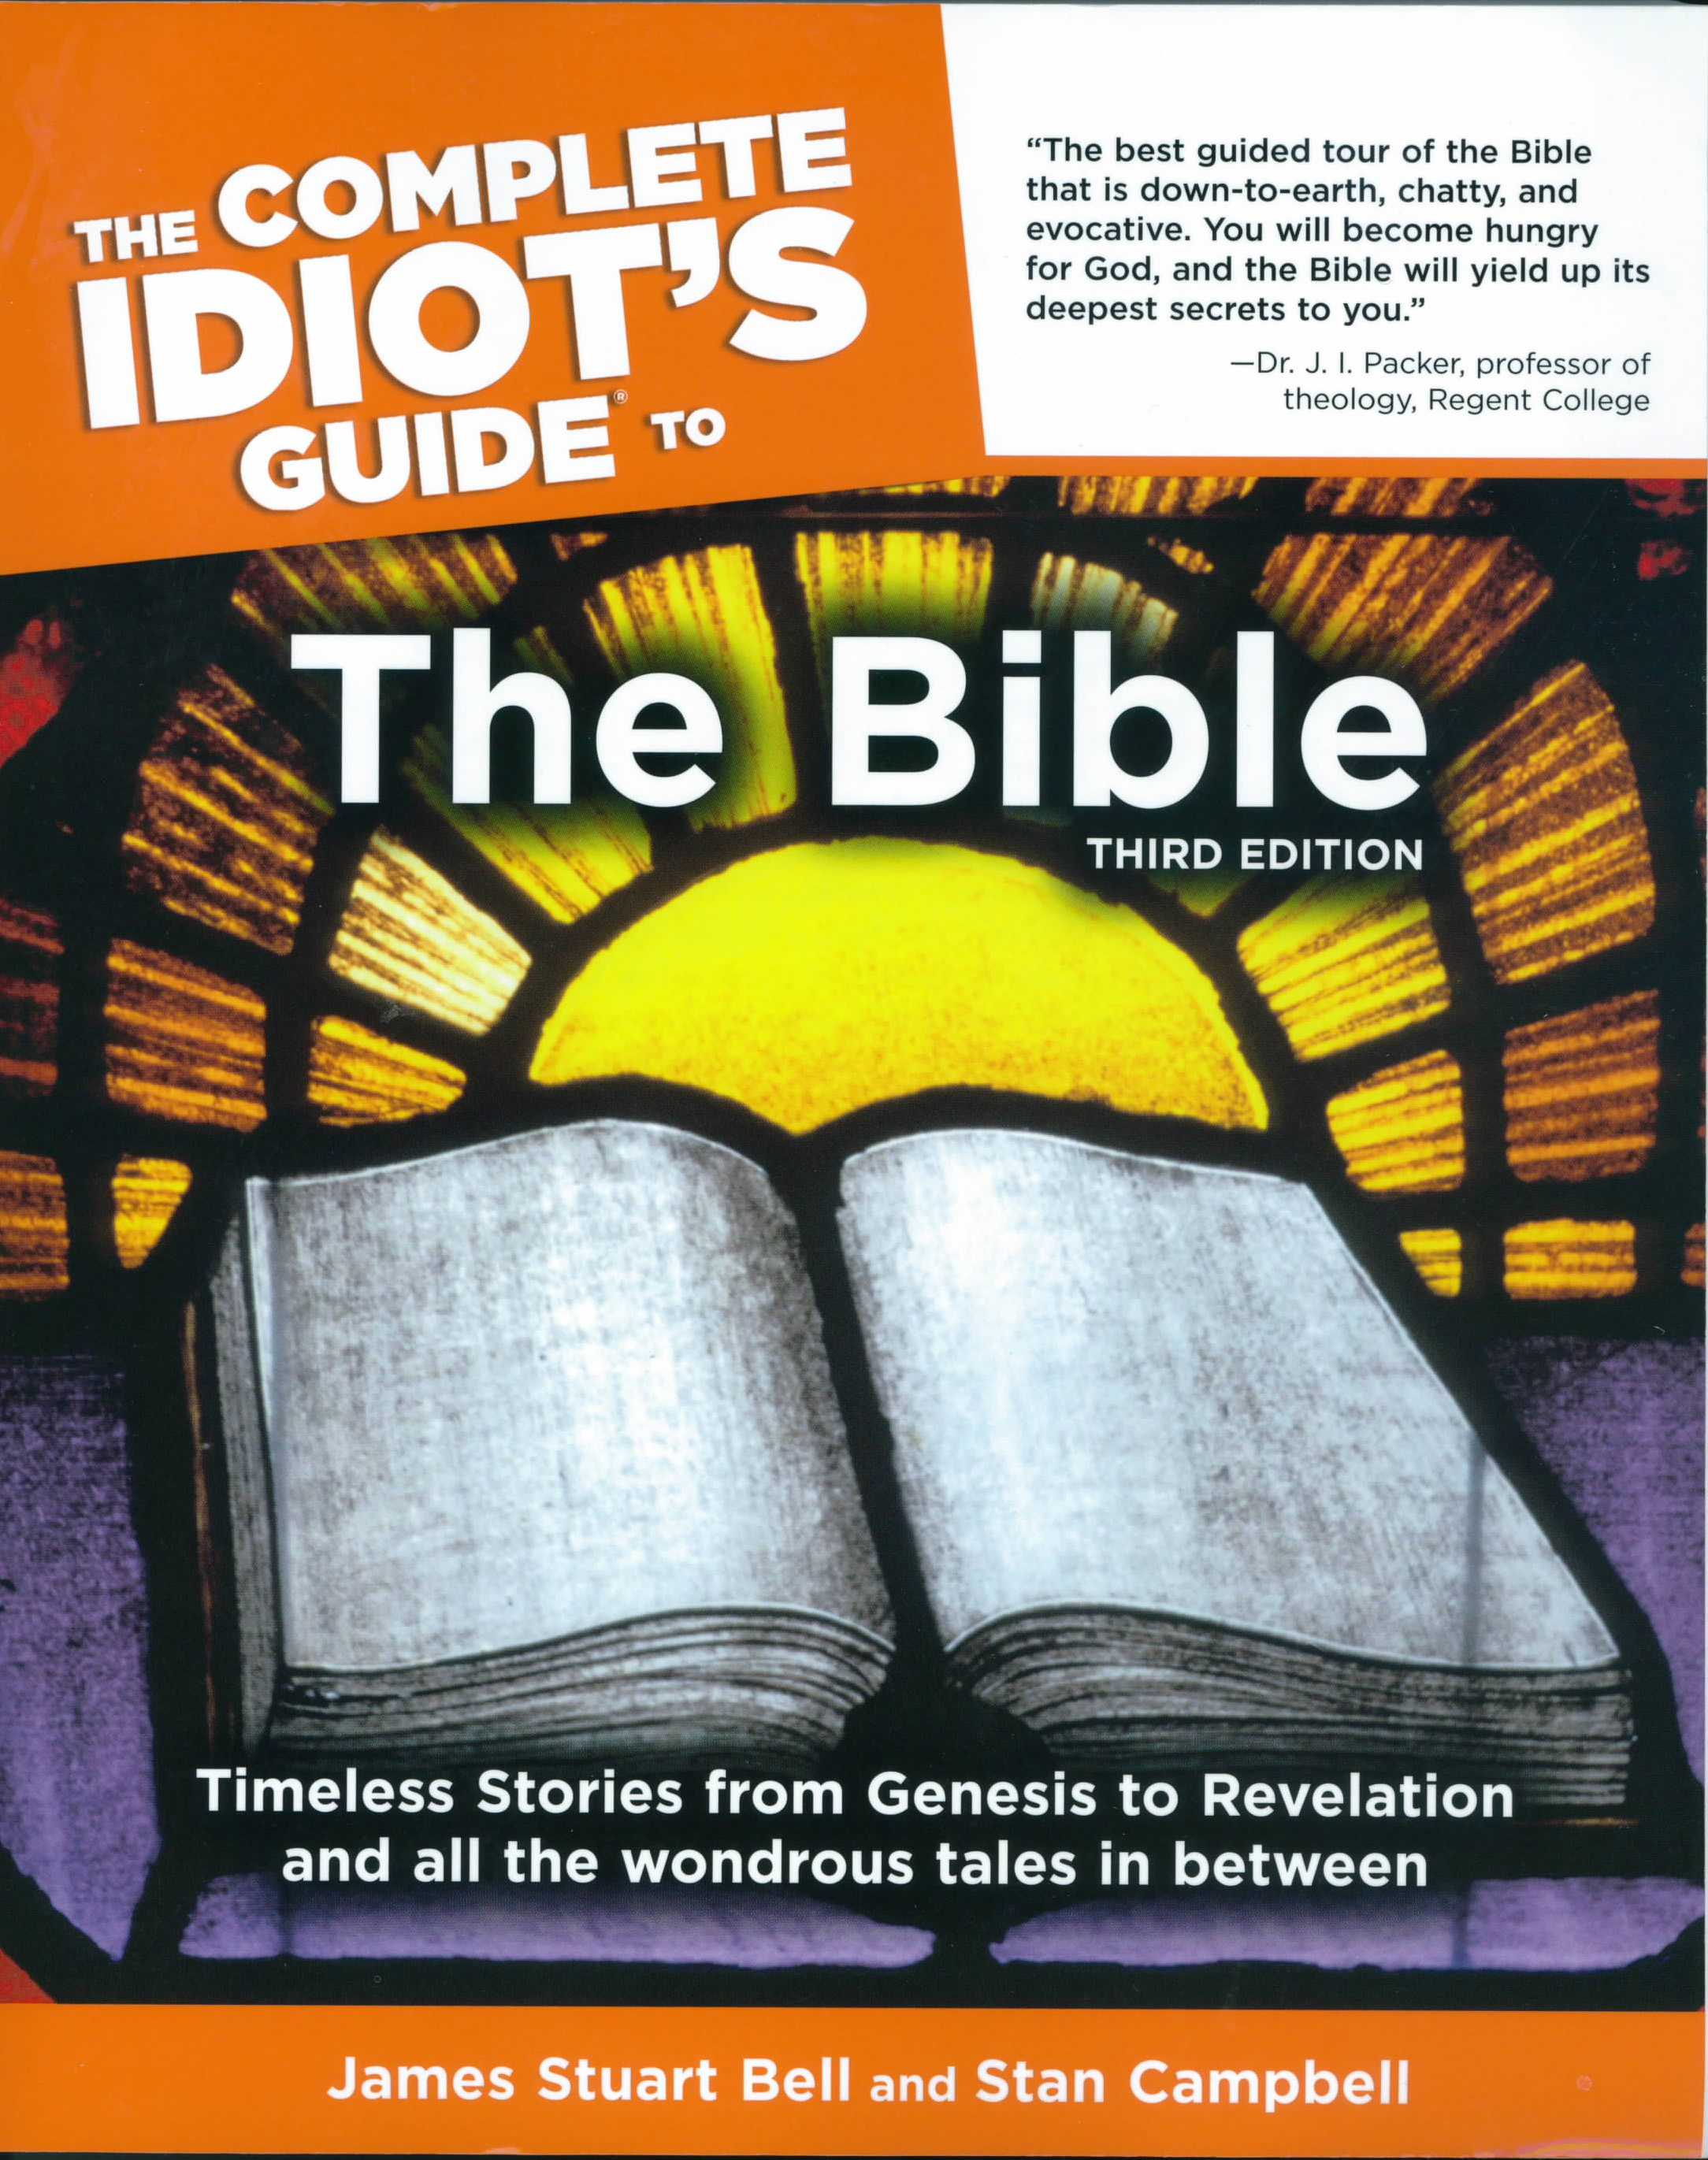 The Complete Idiot's Guide To The Bible, 3rd Edition, 108-9781592573899